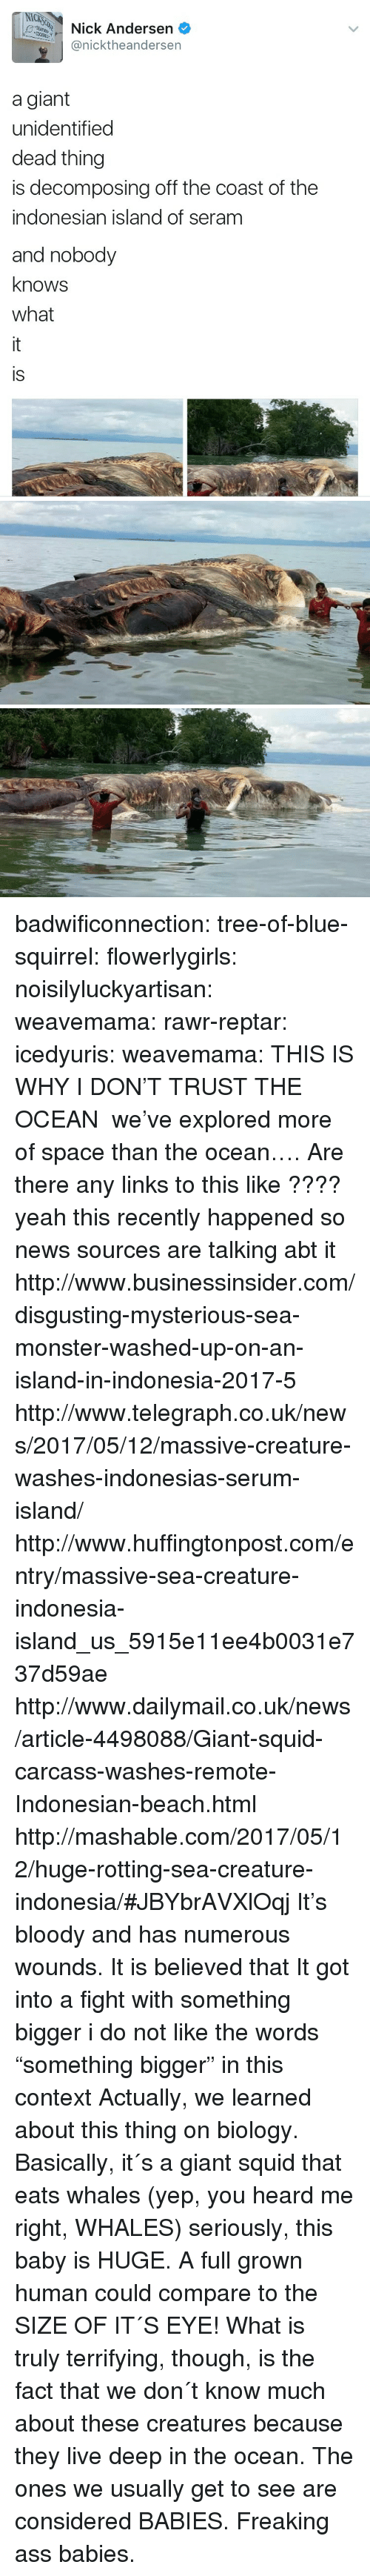 "heard me: NIC  Nick Andersen  @nicktheandersen  a giant  unidentified  dead thing  is decomposing off the coast of the  indonesian island of seram  and nobody  knows  what  is badwificonnection:  tree-of-blue-squirrel:   flowerlygirls:  noisilyluckyartisan:   weavemama:   rawr-reptar:  icedyuris:   weavemama: THIS IS WHY I DON'T TRUST THE OCEAN  we've explored more of space than the ocean….   Are there any links to this like ????  yeah this recently happened so news sources are talking abt it http://www.businessinsider.com/disgusting-mysterious-sea-monster-washed-up-on-an-island-in-indonesia-2017-5 http://www.telegraph.co.uk/news/2017/05/12/massive-creature-washes-indonesias-serum-island/ http://www.huffingtonpost.com/entry/massive-sea-creature-indonesia-island_us_5915e11ee4b0031e737d59ae http://www.dailymail.co.uk/news/article-4498088/Giant-squid-carcass-washes-remote-Indonesian-beach.html http://mashable.com/2017/05/12/huge-rotting-sea-creature-indonesia/#JBYbrAVXlOqj   It's bloody and has numerous wounds. It is believed that It got into a fight with something bigger   i do not like the words ""something bigger"" in this context  Actually, we learned about this thing on biology. Basically, it´s a giant squid that eats whales (yep, you heard me right, WHALES) seriously, this baby is HUGE. A full grown human could compare to the SIZE OF IT´S EYE! What is truly terrifying, though, is the fact that we don´t know much about these creatures because they live deep in the ocean. The ones we usually get to see are considered BABIES. Freaking ass babies."